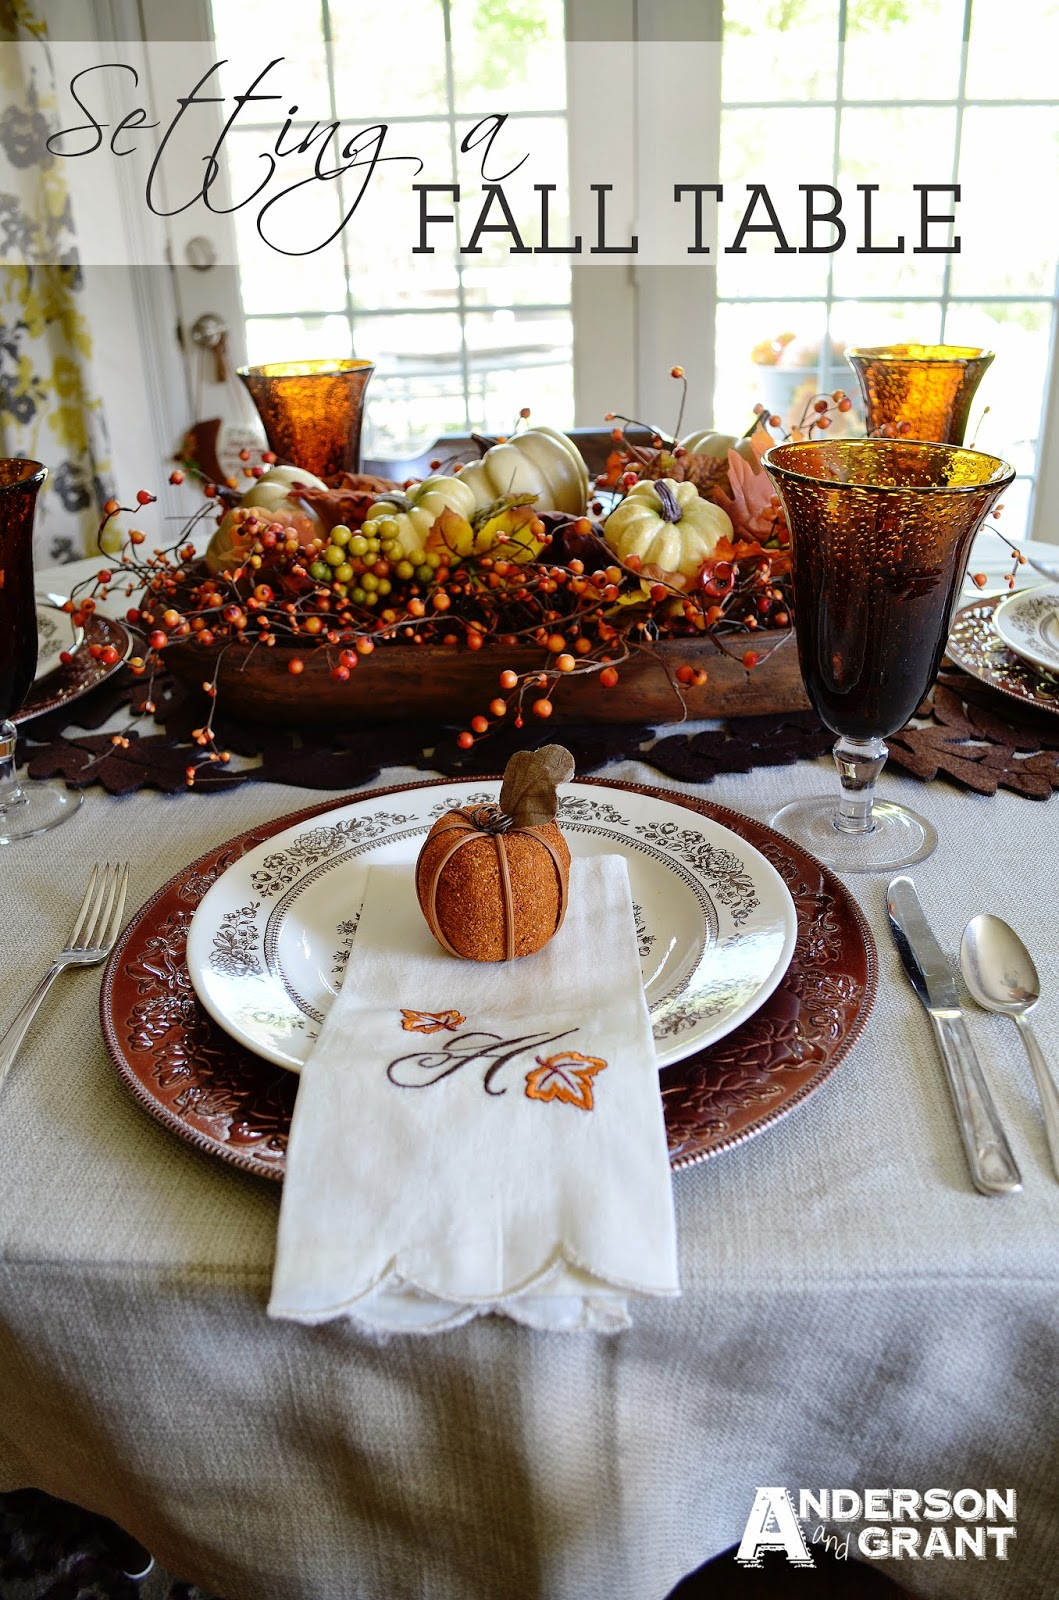 Thanksgiving recipes and decor ideas on pinterest for Fall table